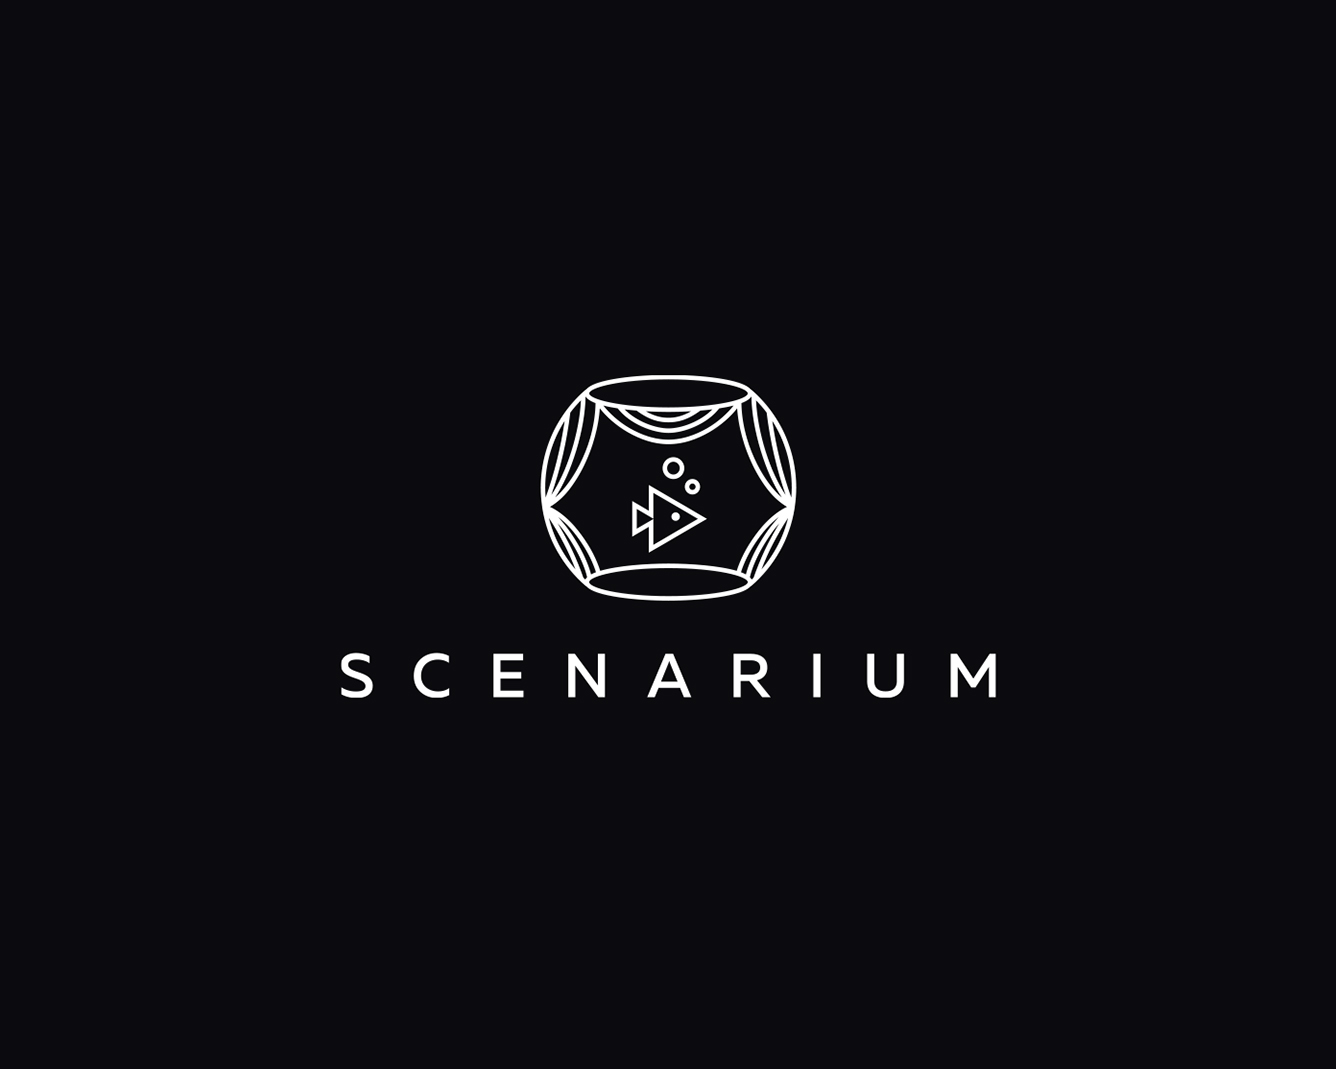 Designer creates logos with hidden meanings - 15